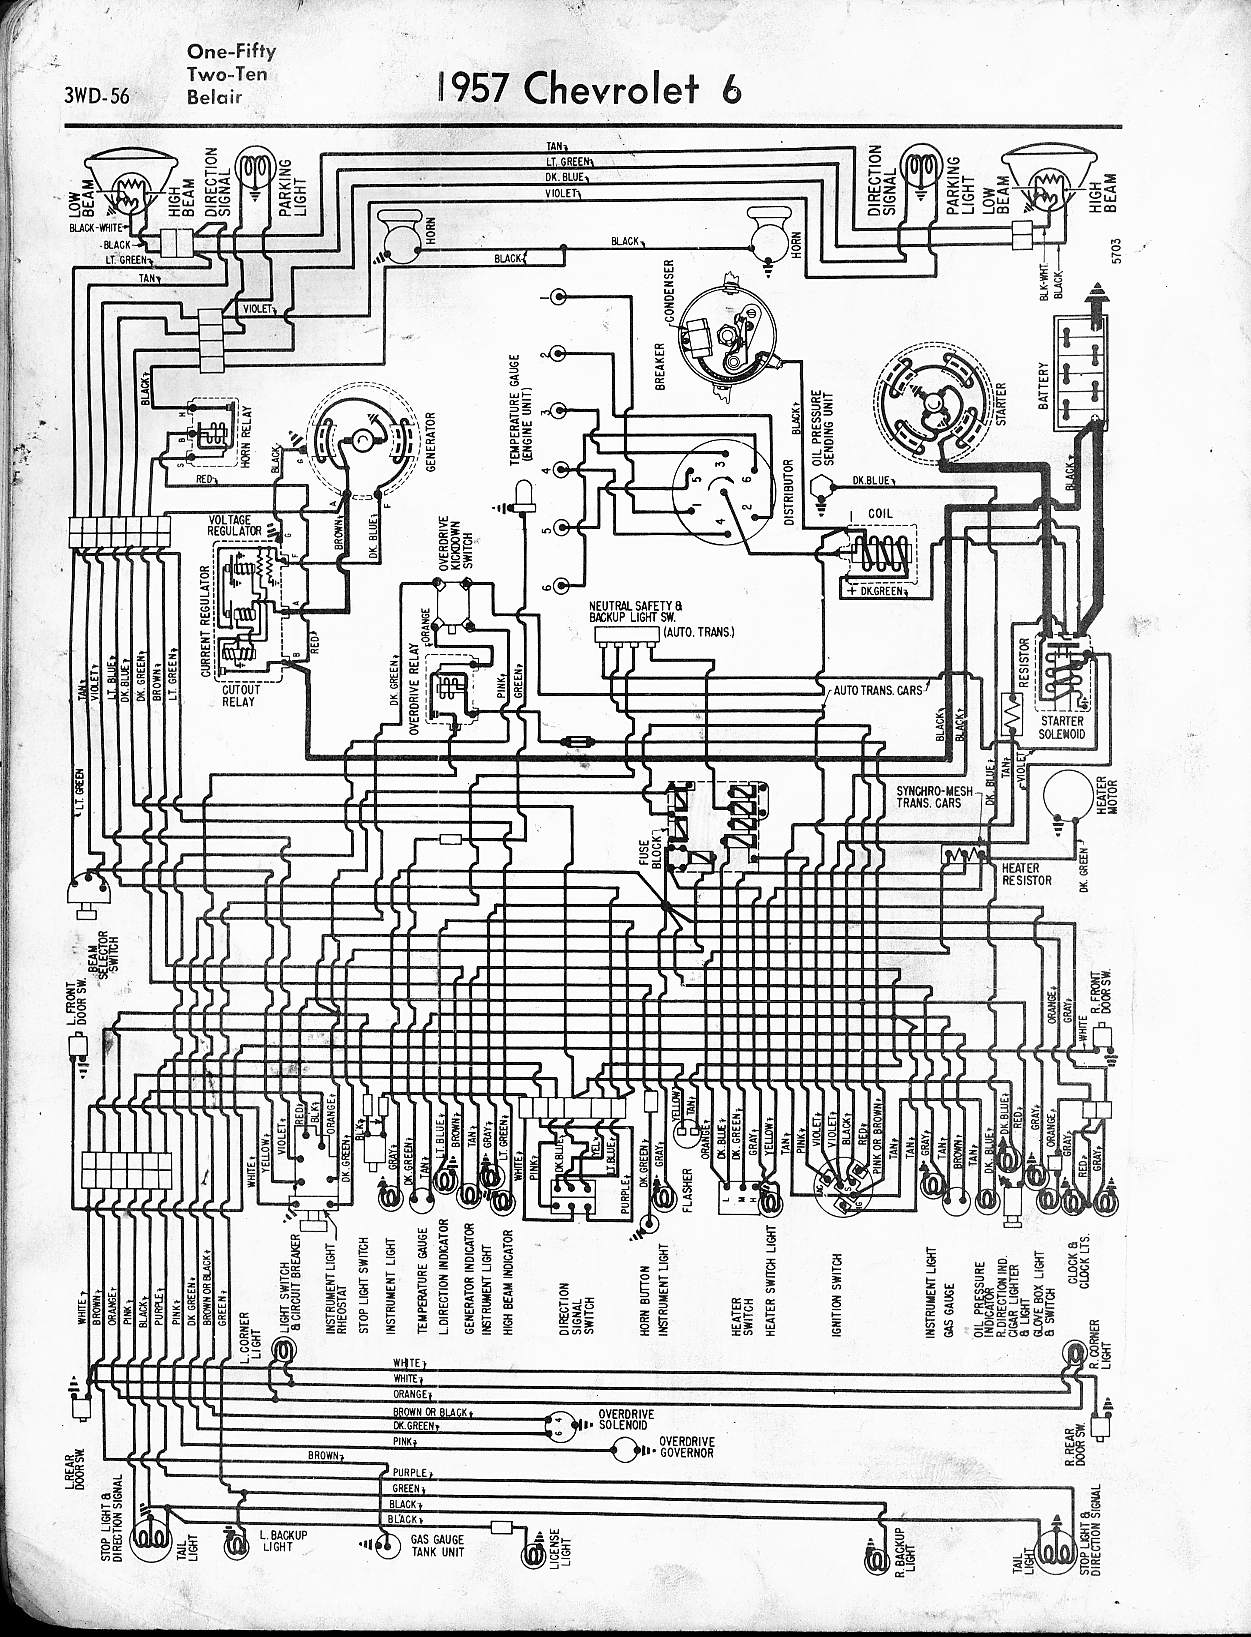 MWireChev57_3WD 056 57 65 chevy wiring diagrams 1963 chevy truck wiring diagram at bakdesigns.co